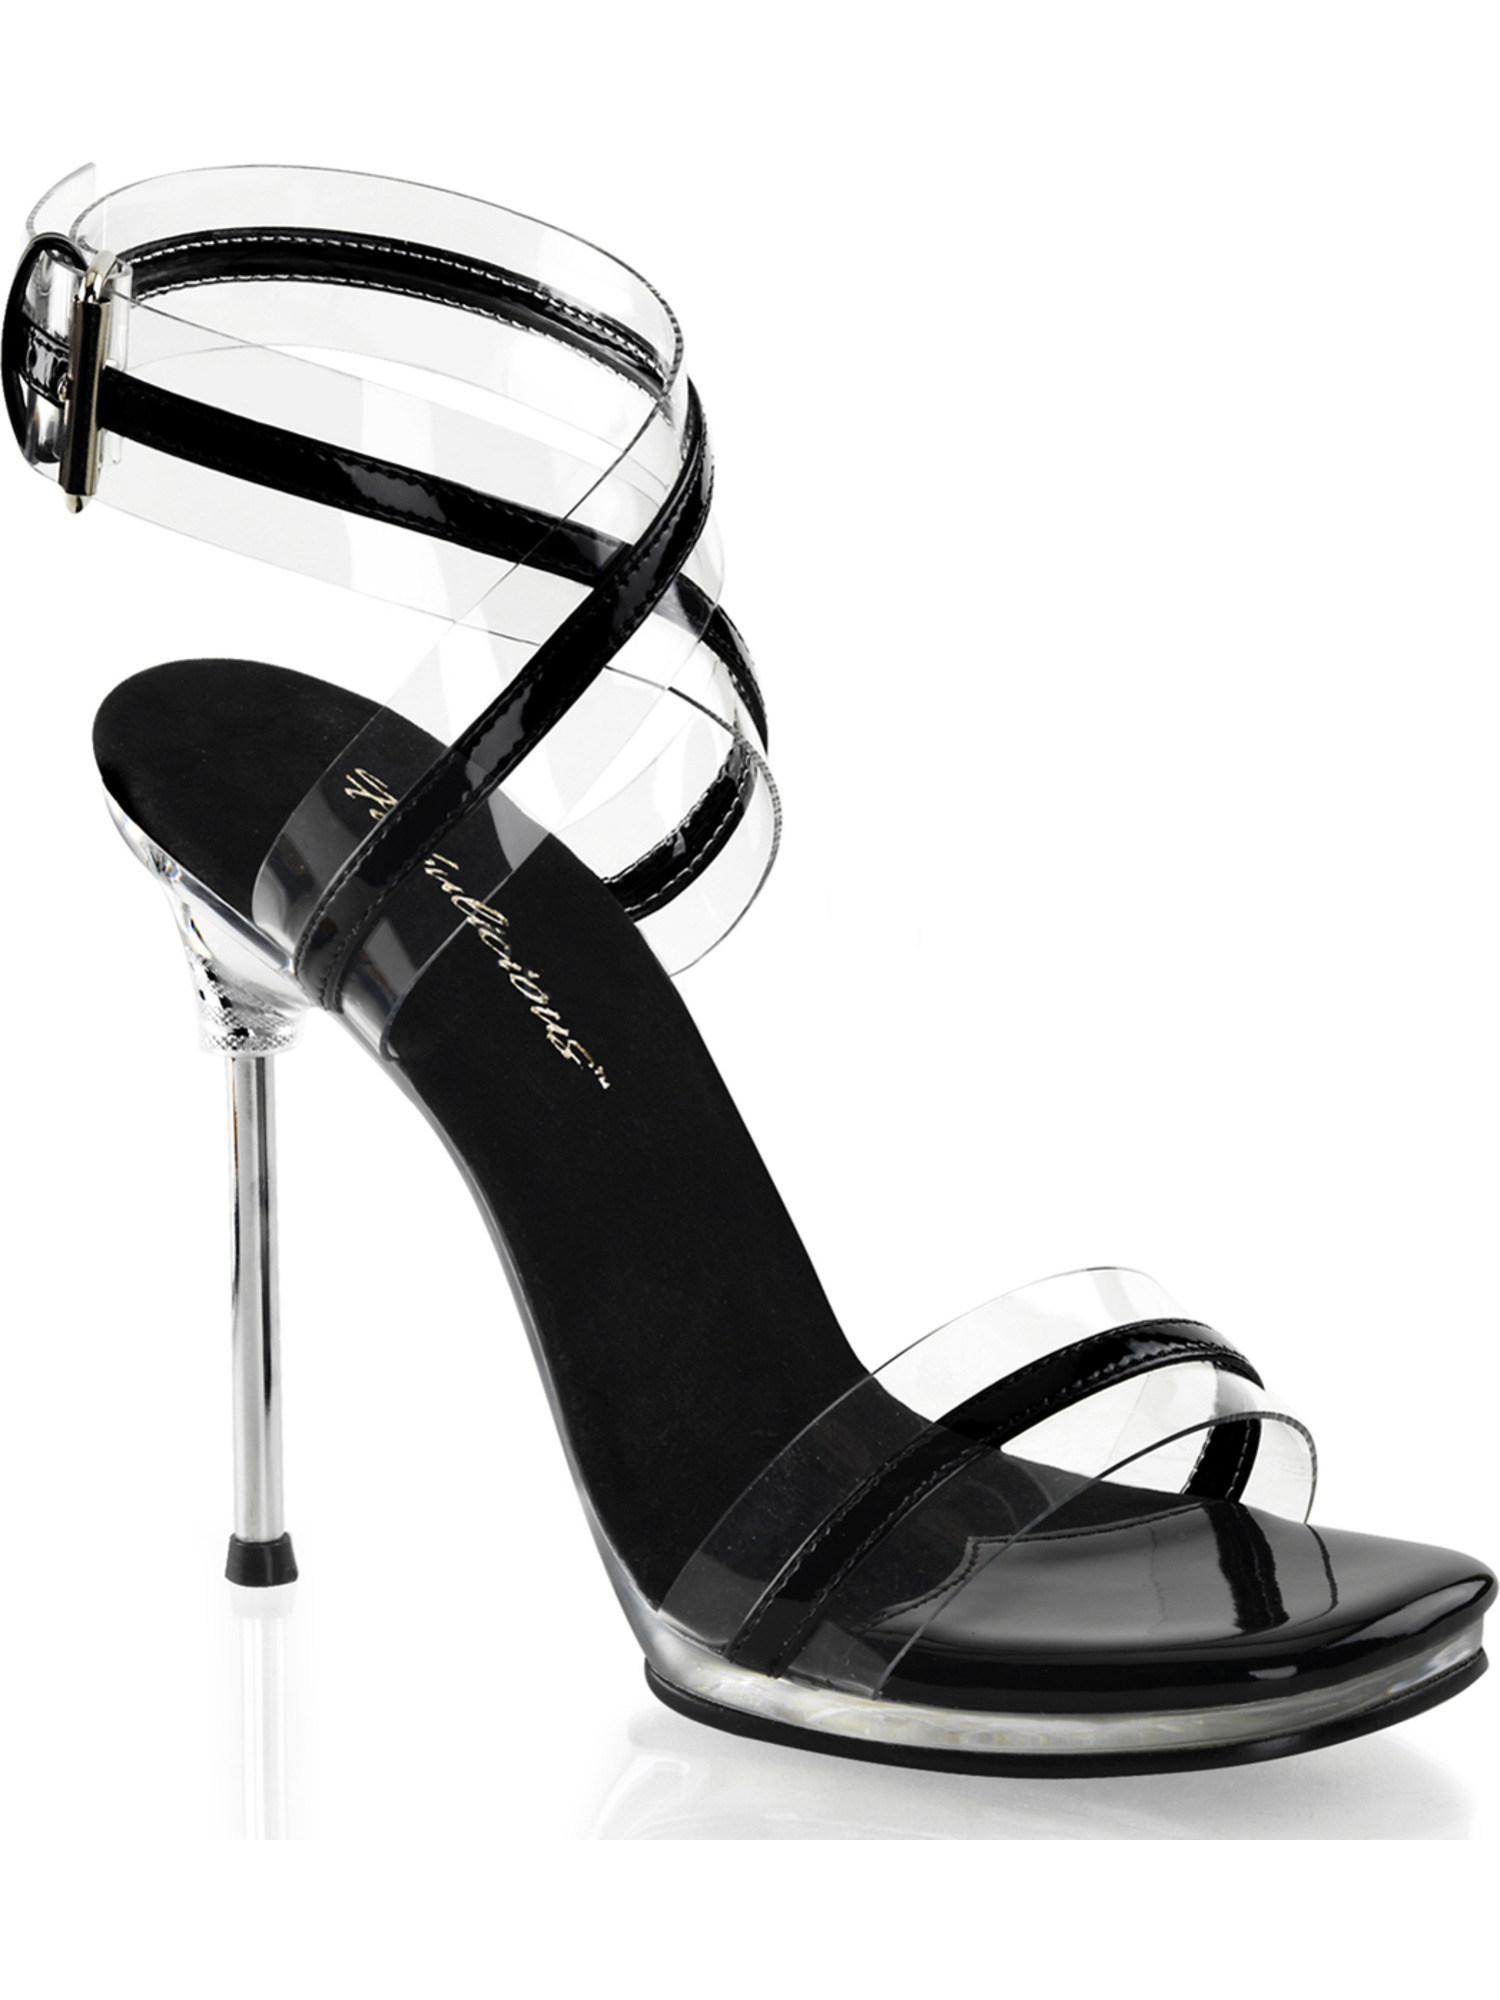 Womens Stylish Black and Clear Dress Sandals 4.5 Inch Silver High Heel Shoes